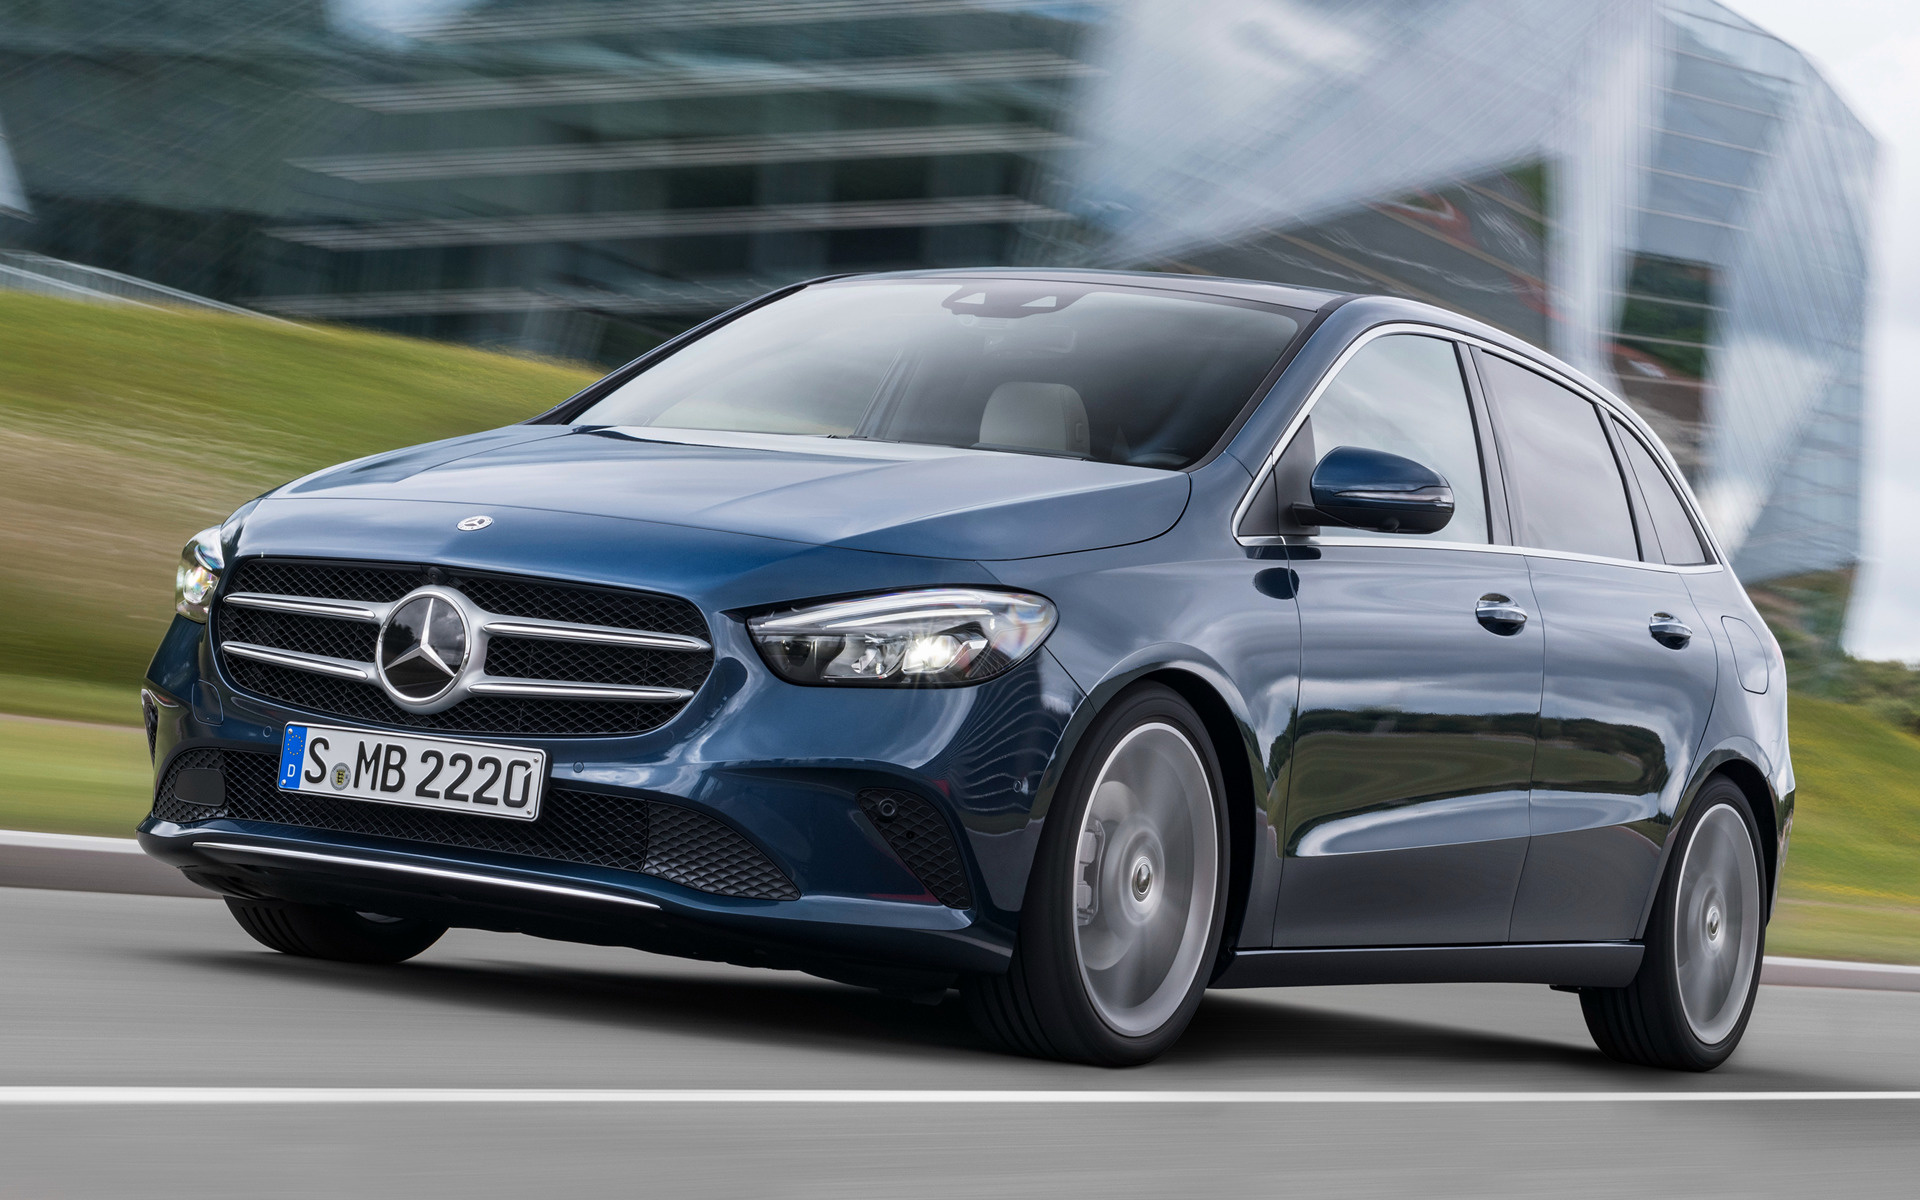 Mercedes-Benz B-Class (2019) Wallpapers and HD Images - Car Pixel